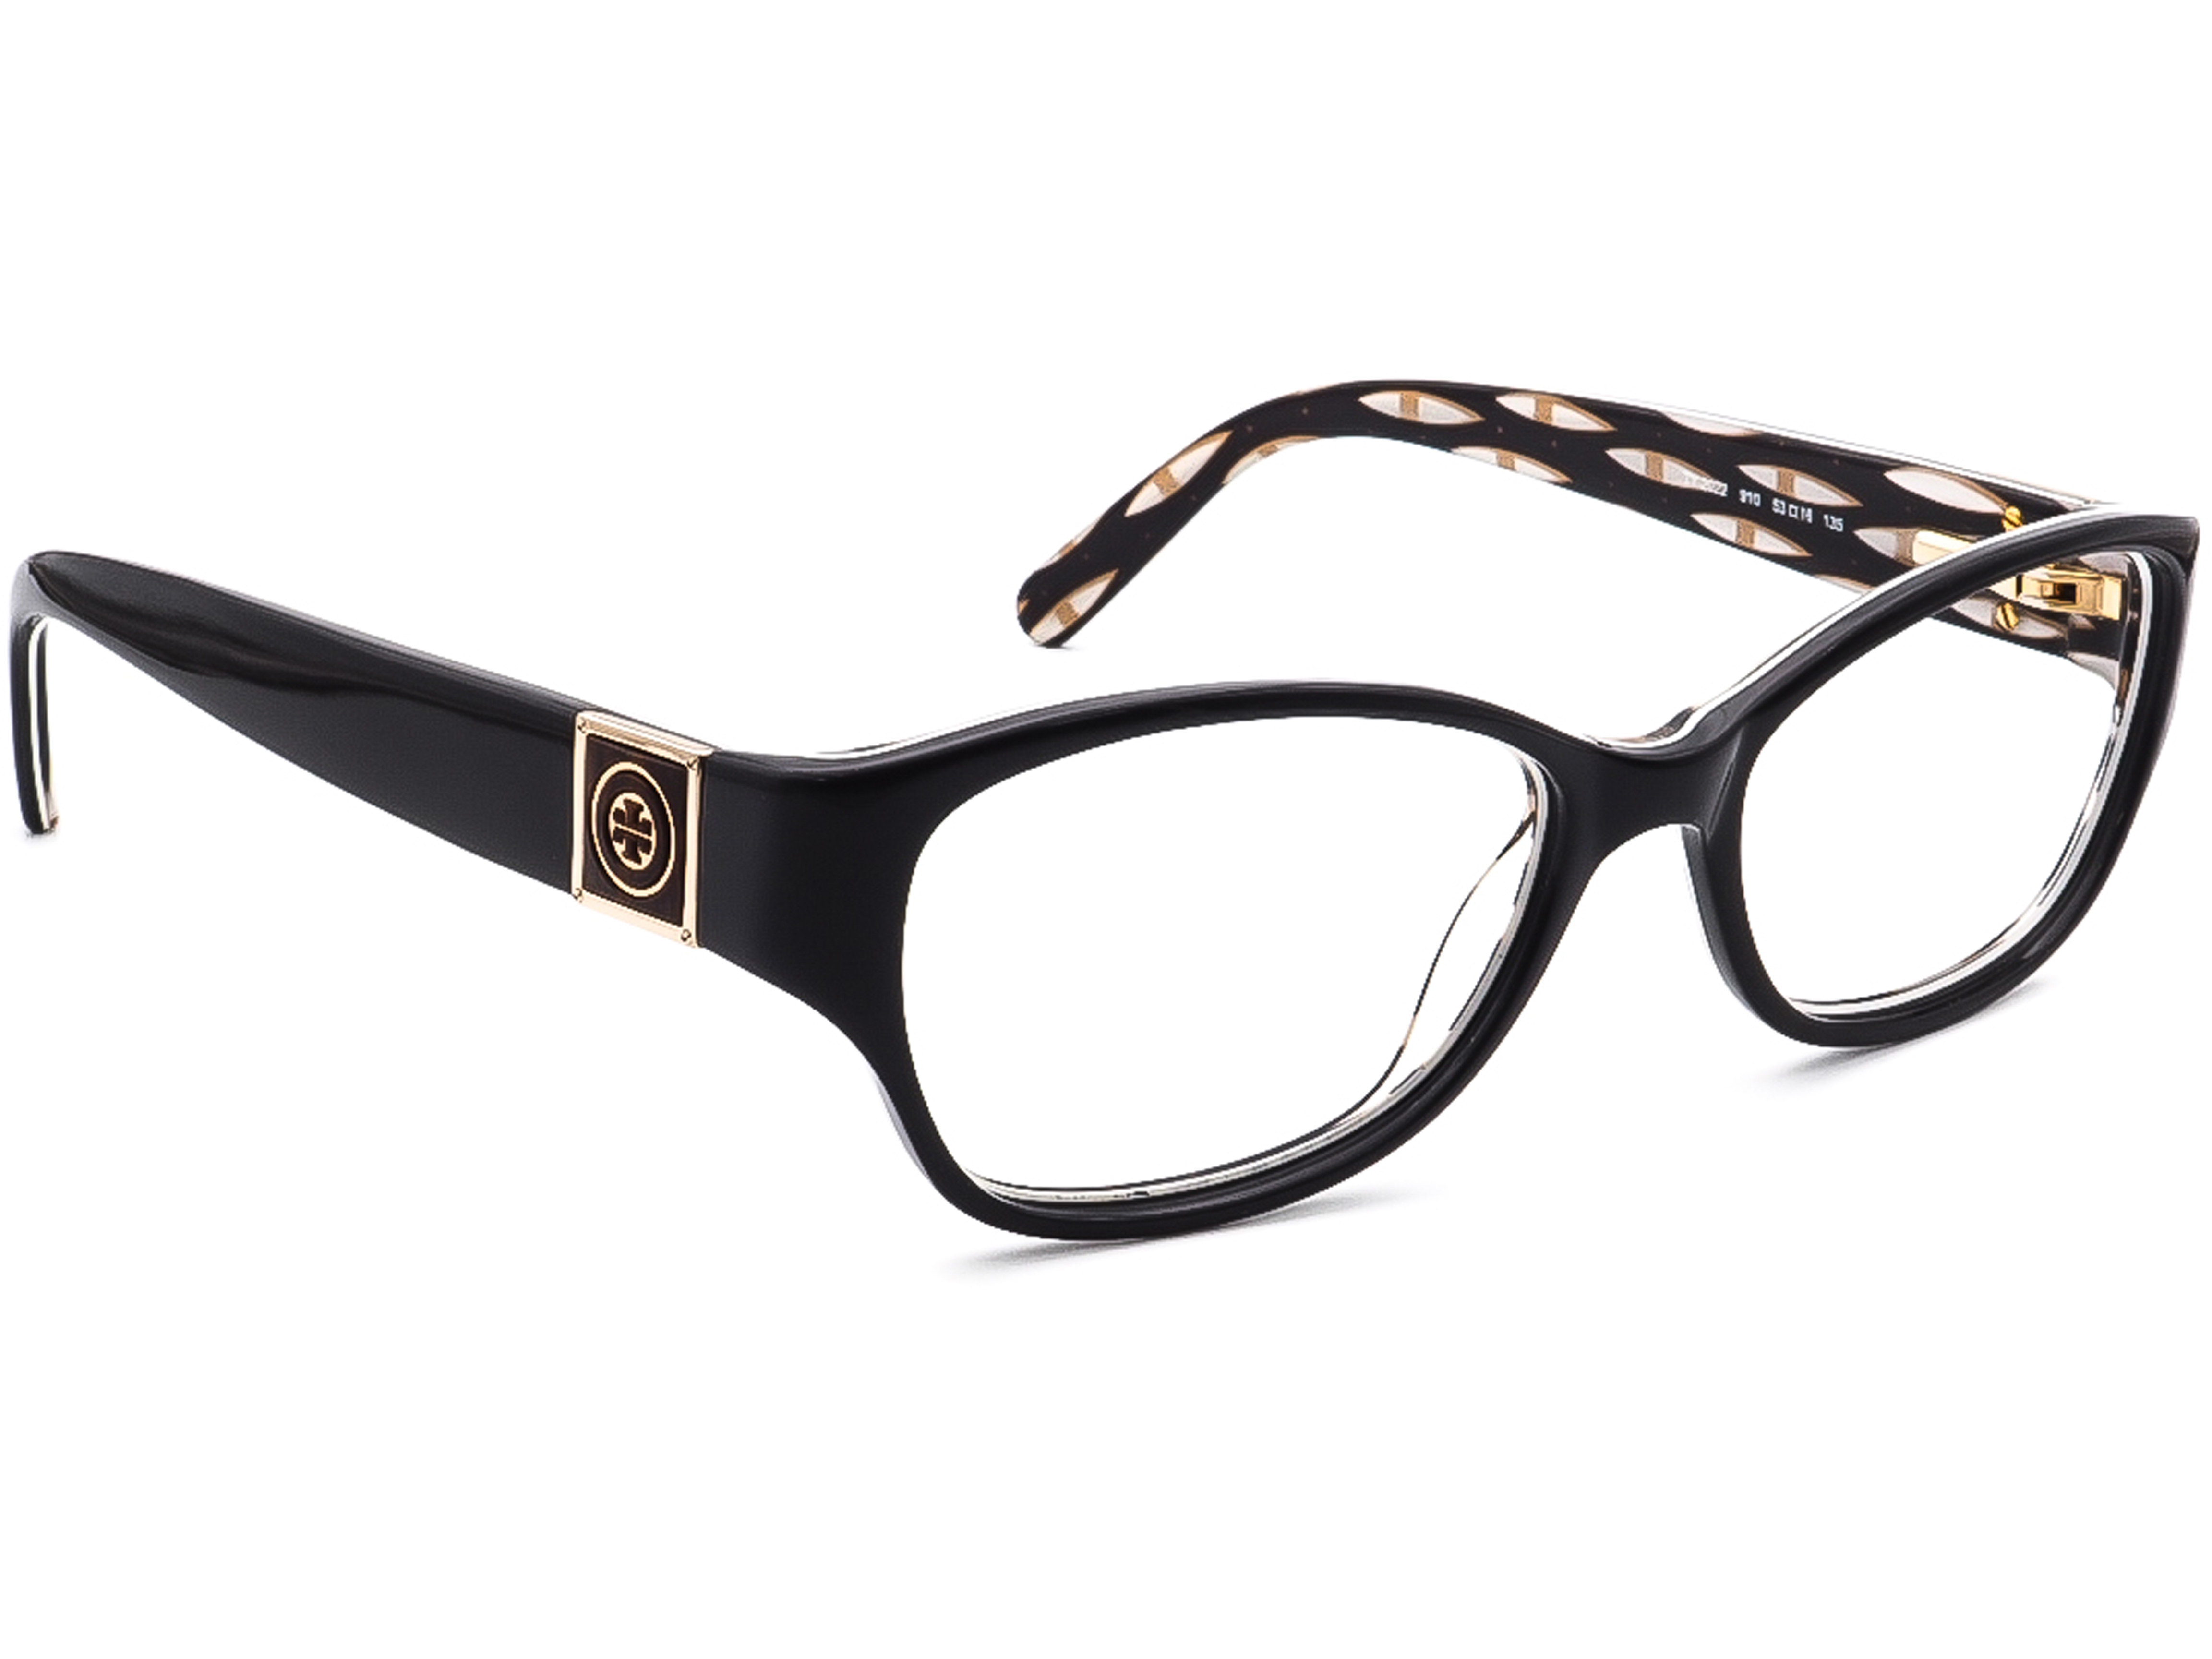 Tory Burch TY 2022 910 Eyeglasses